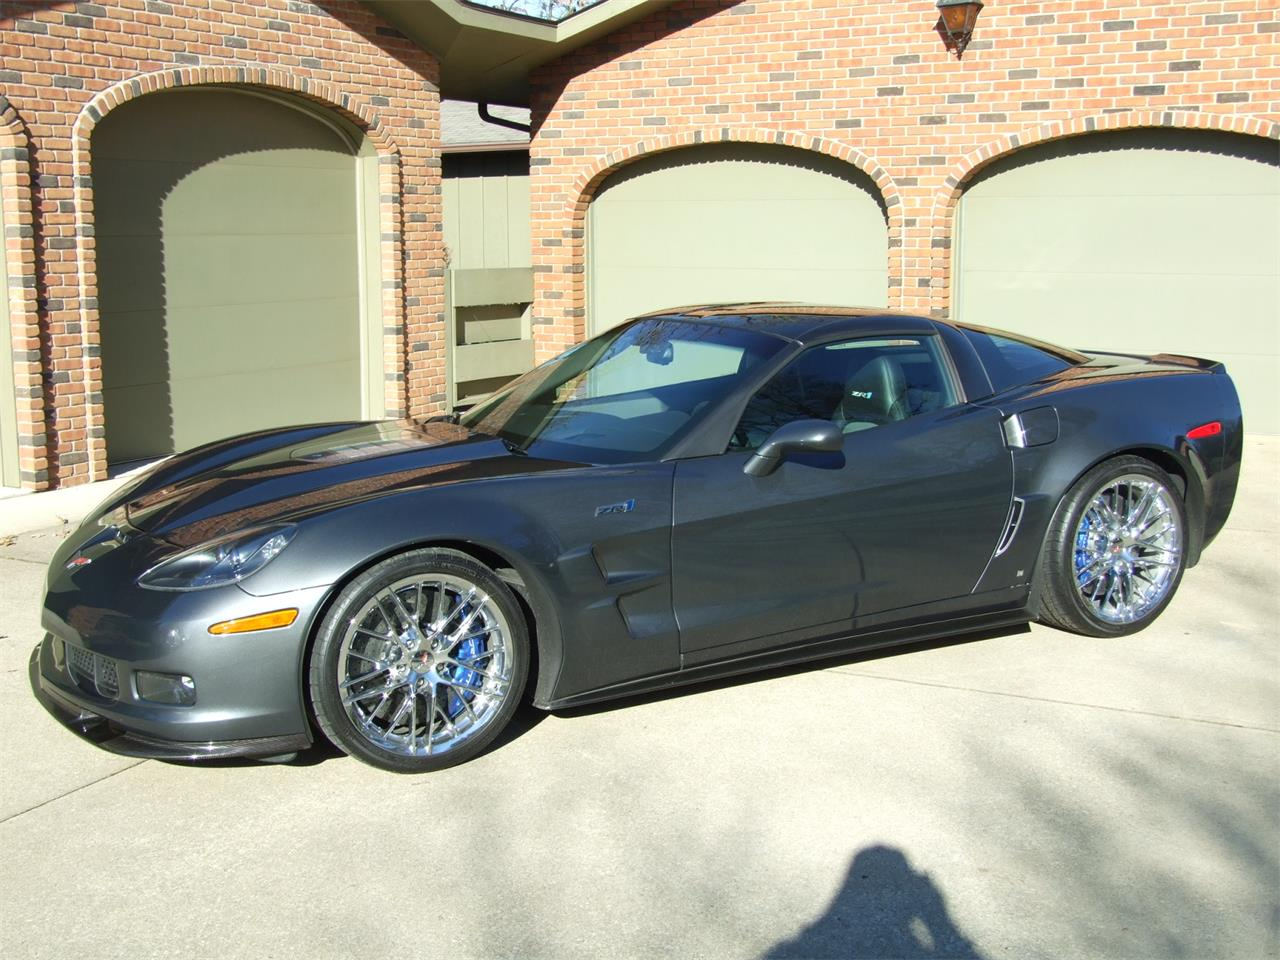 Large Picture of 2009 Chevrolet Corvette ZR1 Offered by Auto Connection, Inc. - DJBI